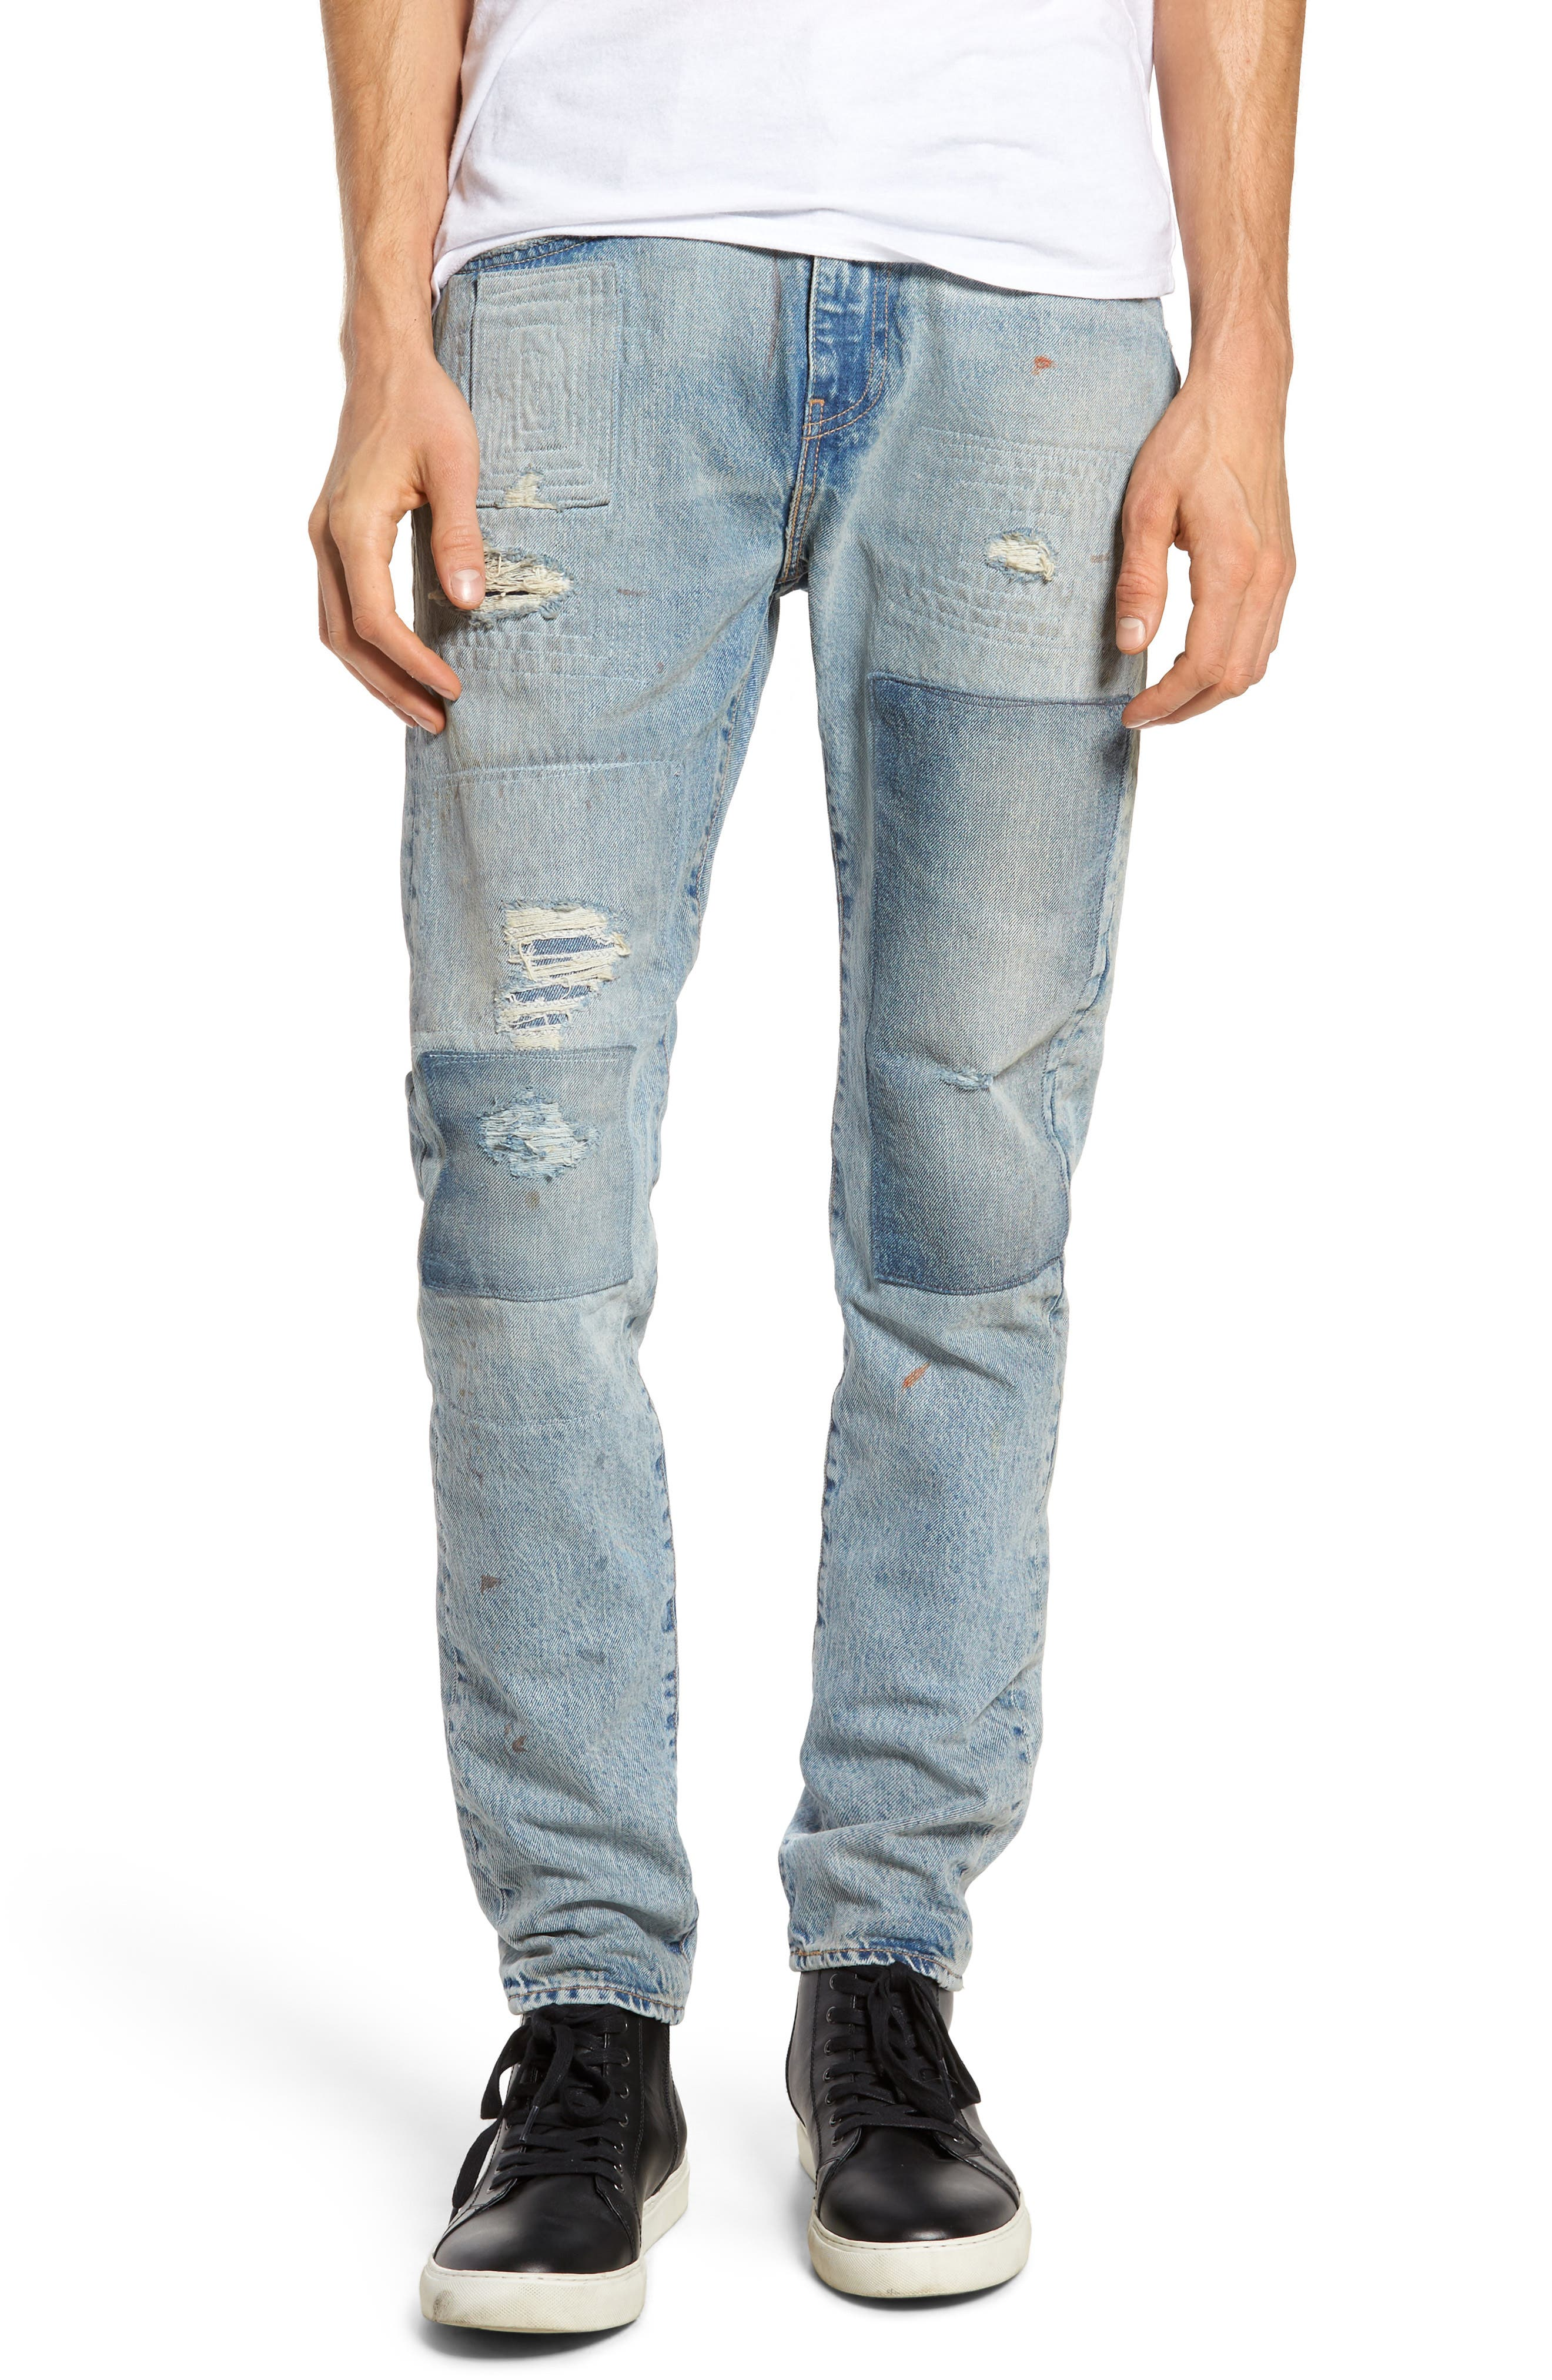 512 Slouchy Skinny Fit Jeans,                             Main thumbnail 1, color,                             423